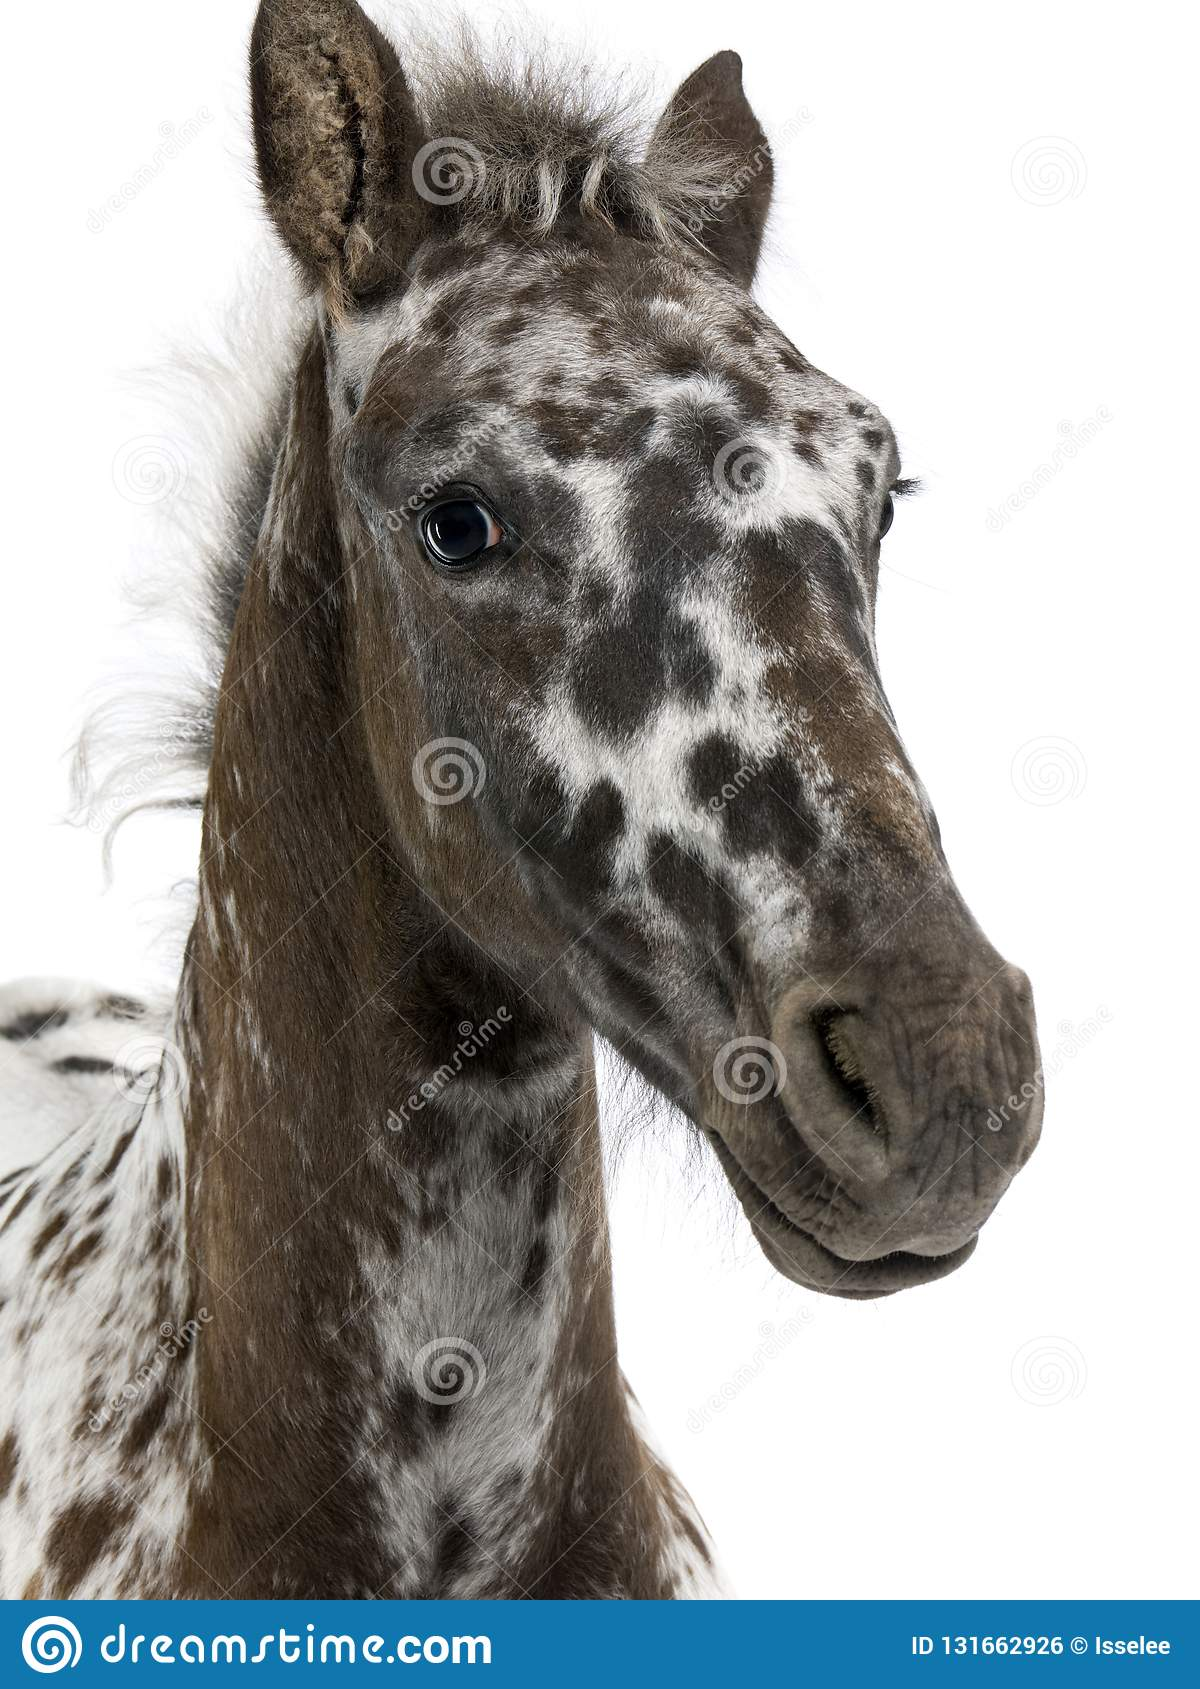 Close Up Of A Crossbreed Foal Between A Appaloosa And A Friesian Horse 3 Months Old Stock Photo Image Of Cattle Close 131662926